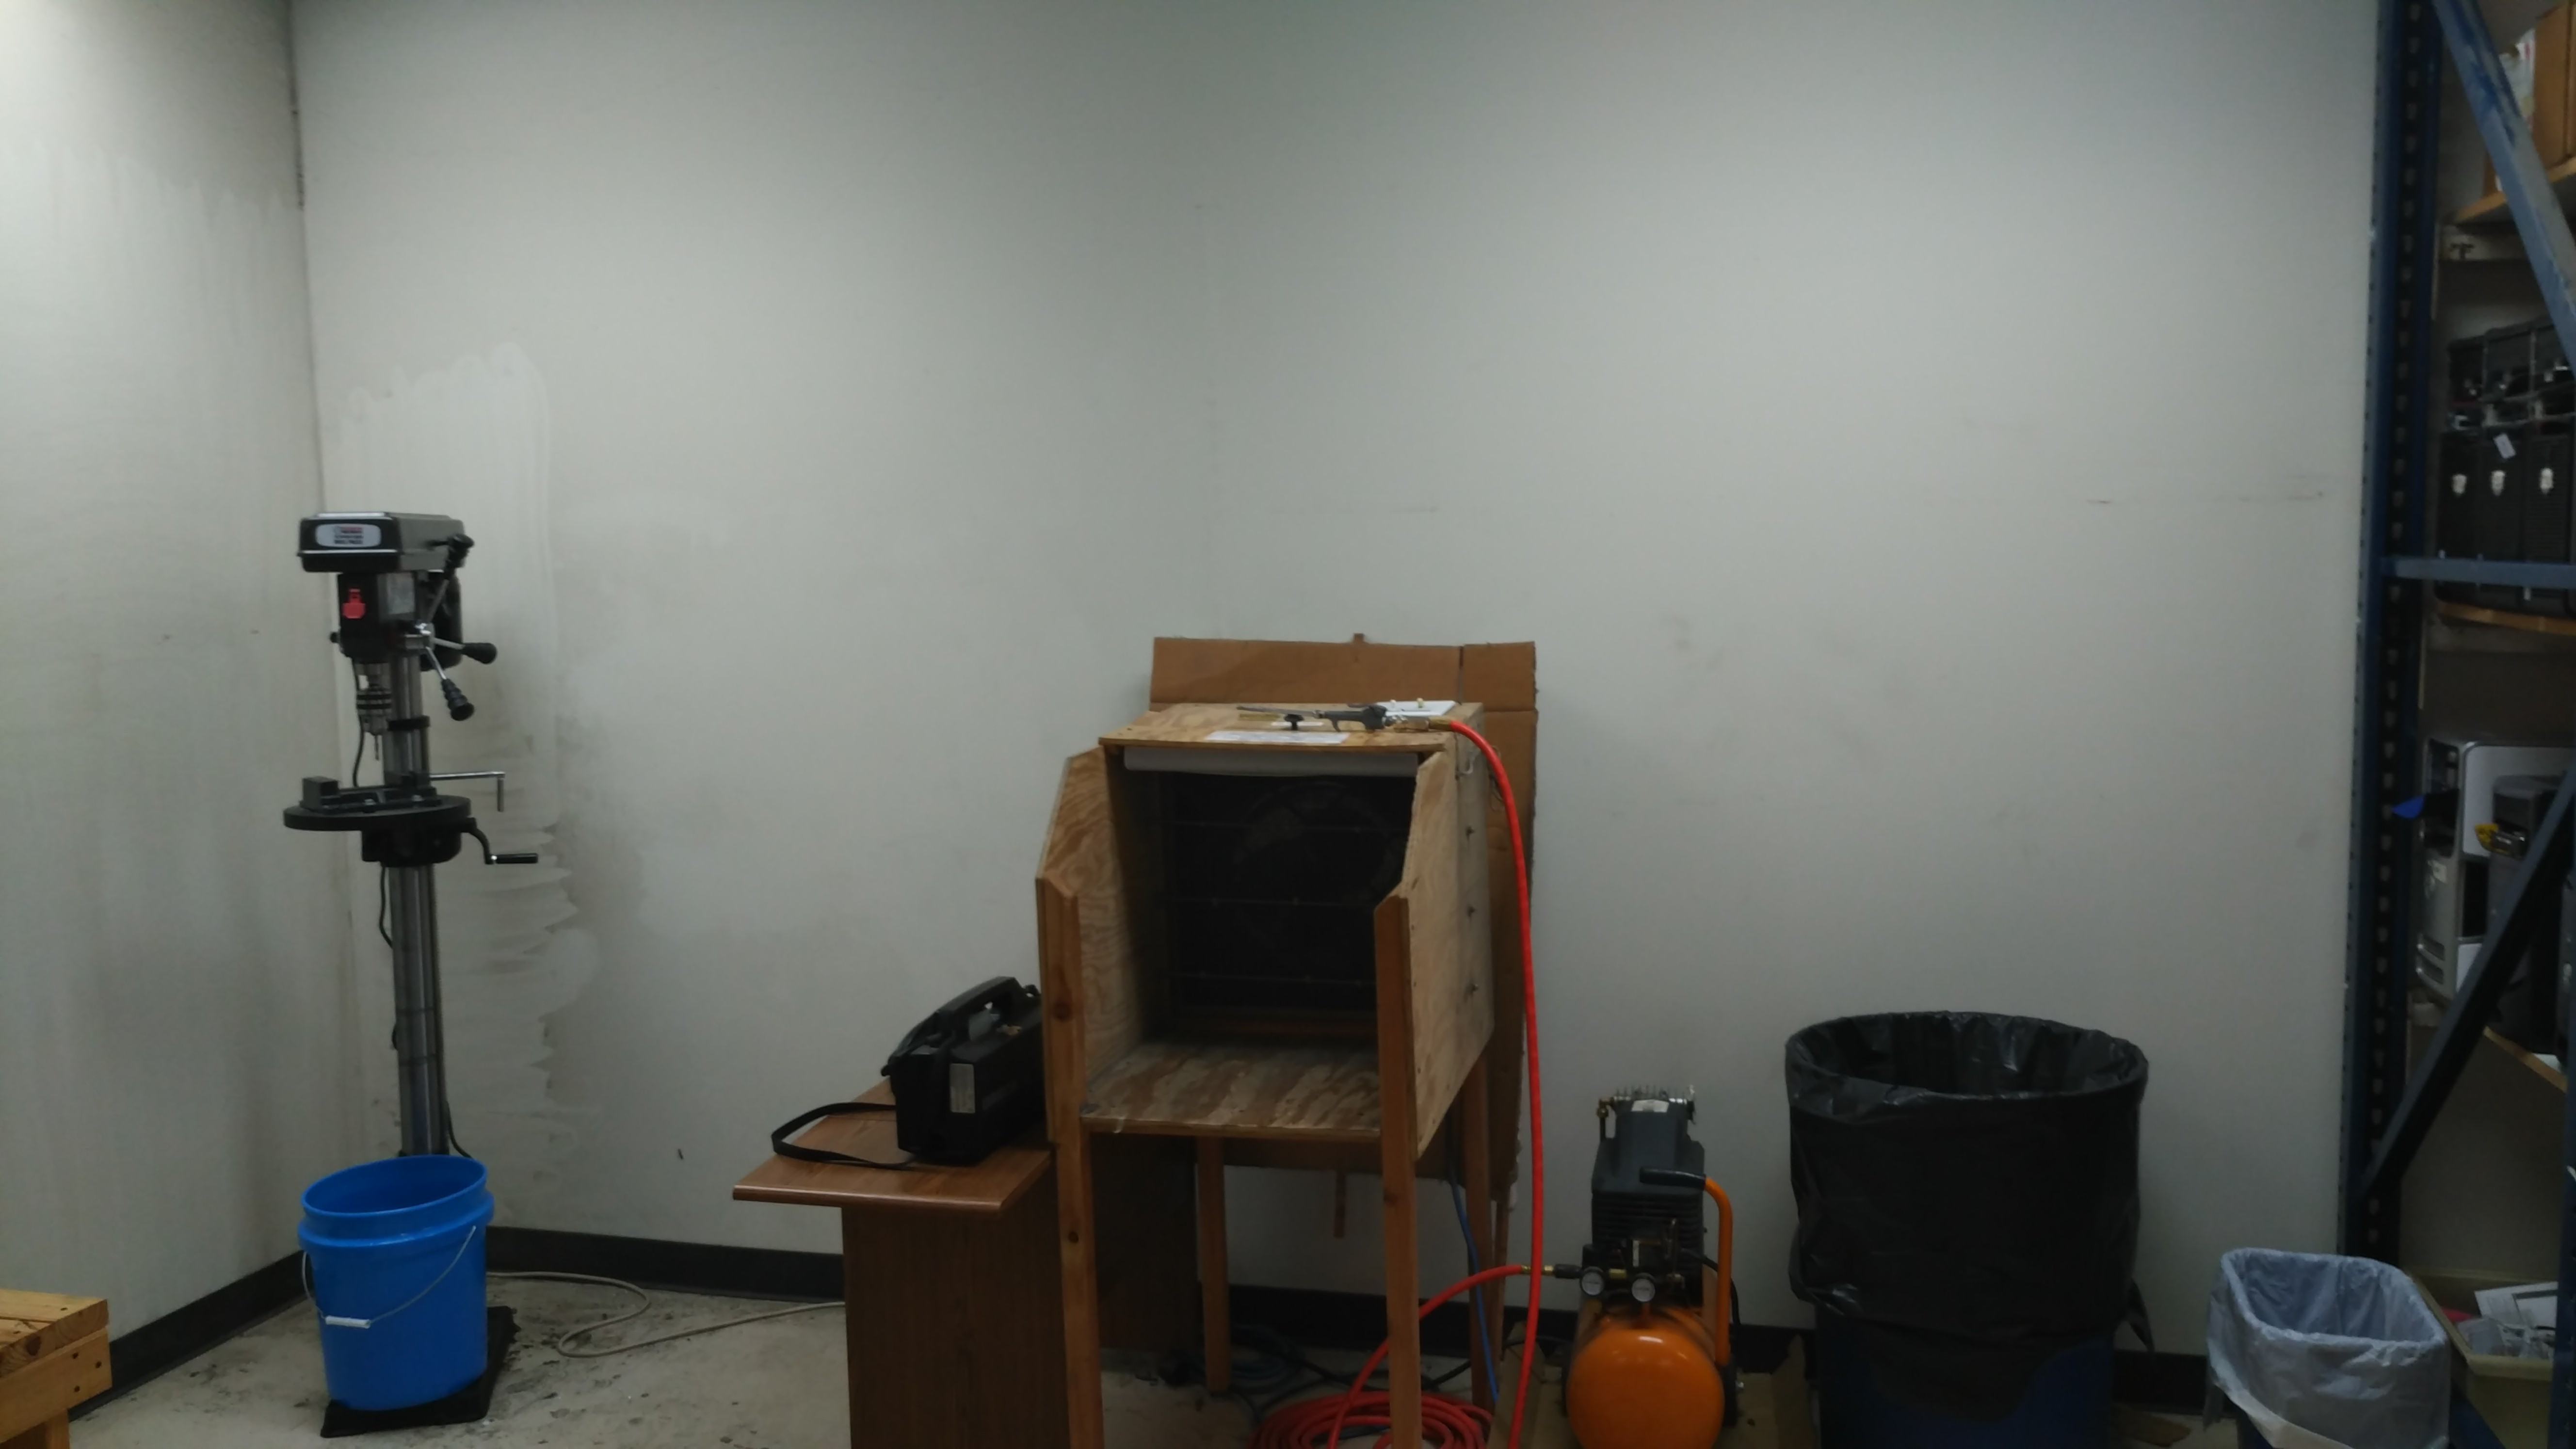 This is our tool corner. We use the drill press to destroy hard drives that cannot be used in computers, and the air compressor allows us to get inside the machine and blow all the dust out. This area was recently redesigned to allow us to get more done.